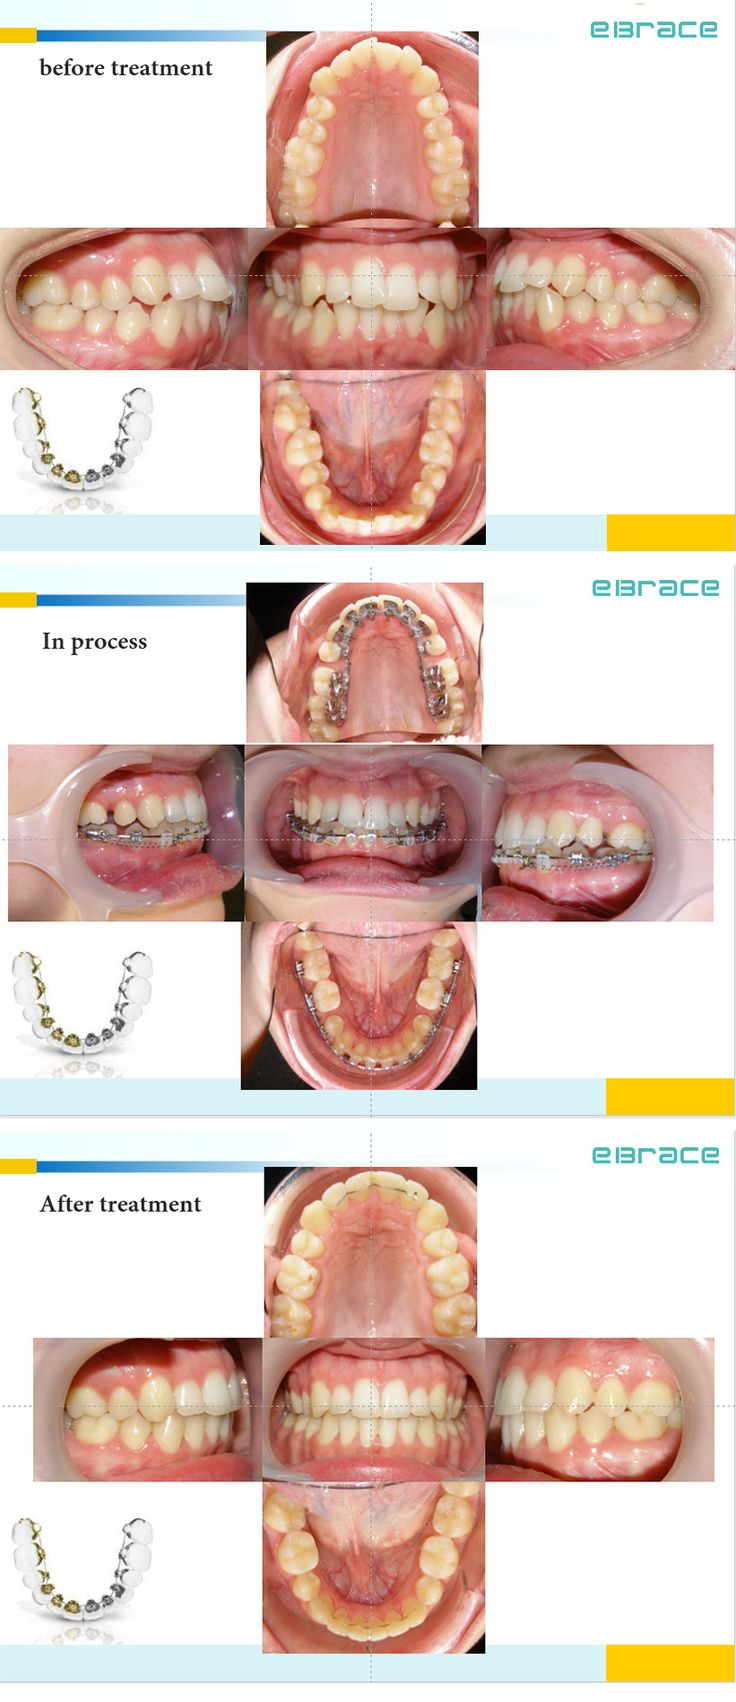 Orthodontic treatment of lingual braces combined with labial braces may be your best choice..! #eBrace# #orthodontics# #hiddenbraces# #insidebraces#